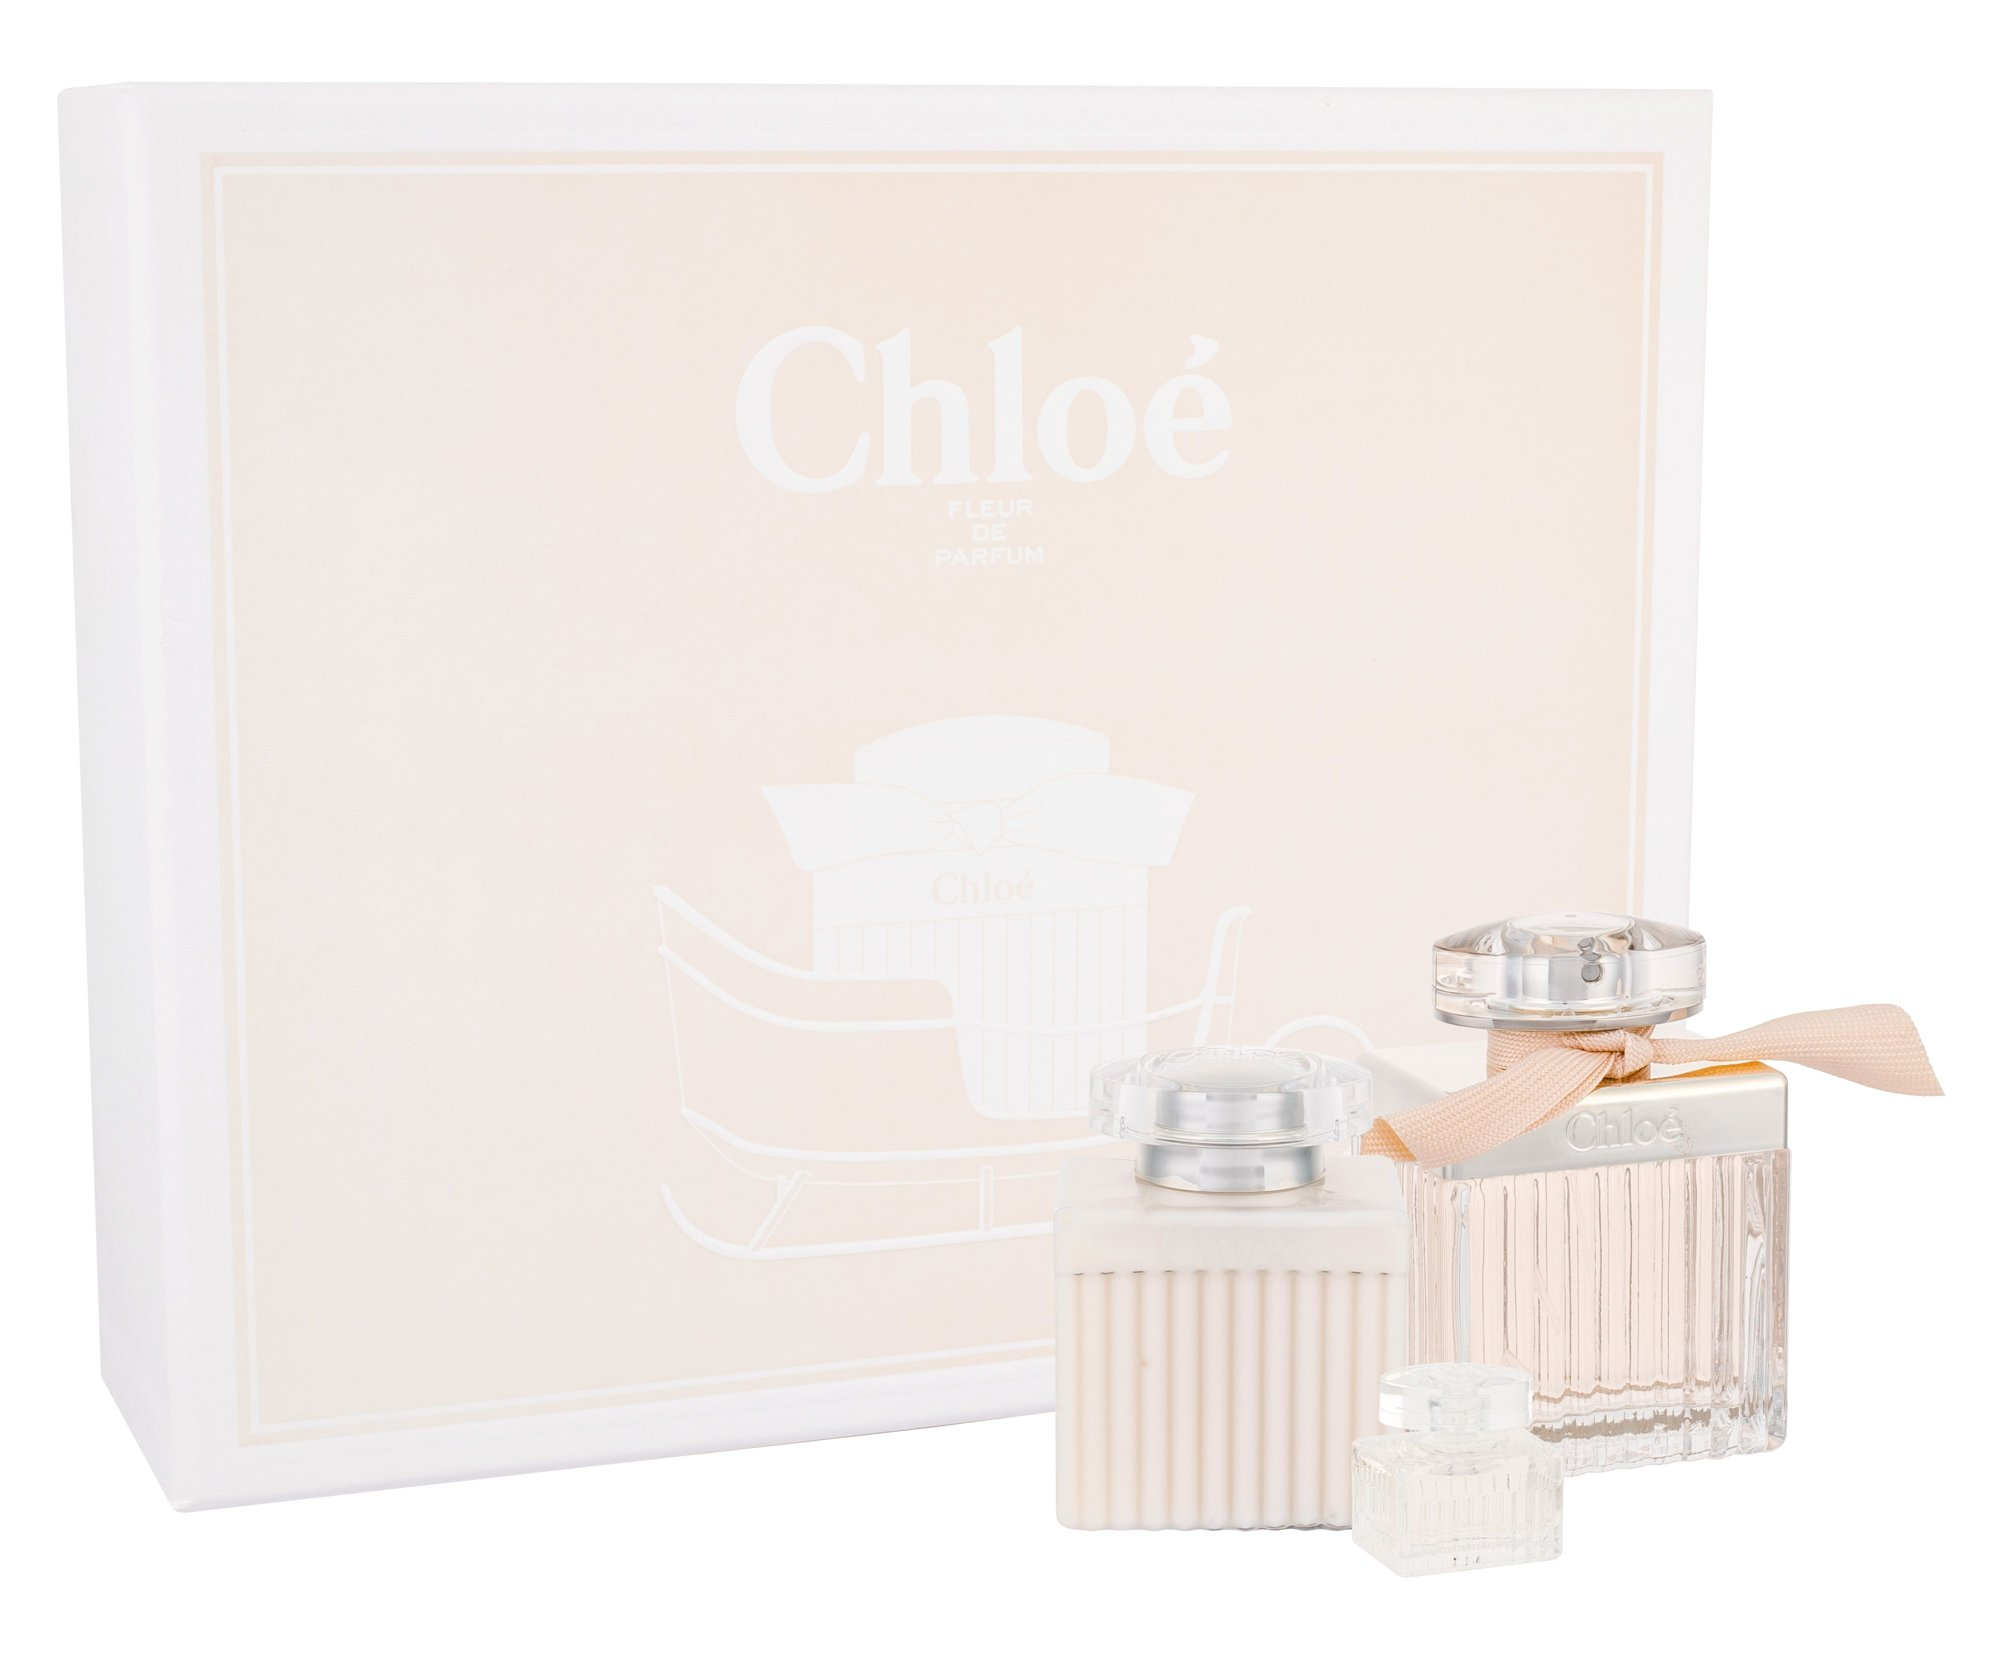 Chloe Chloe EDP 75ml